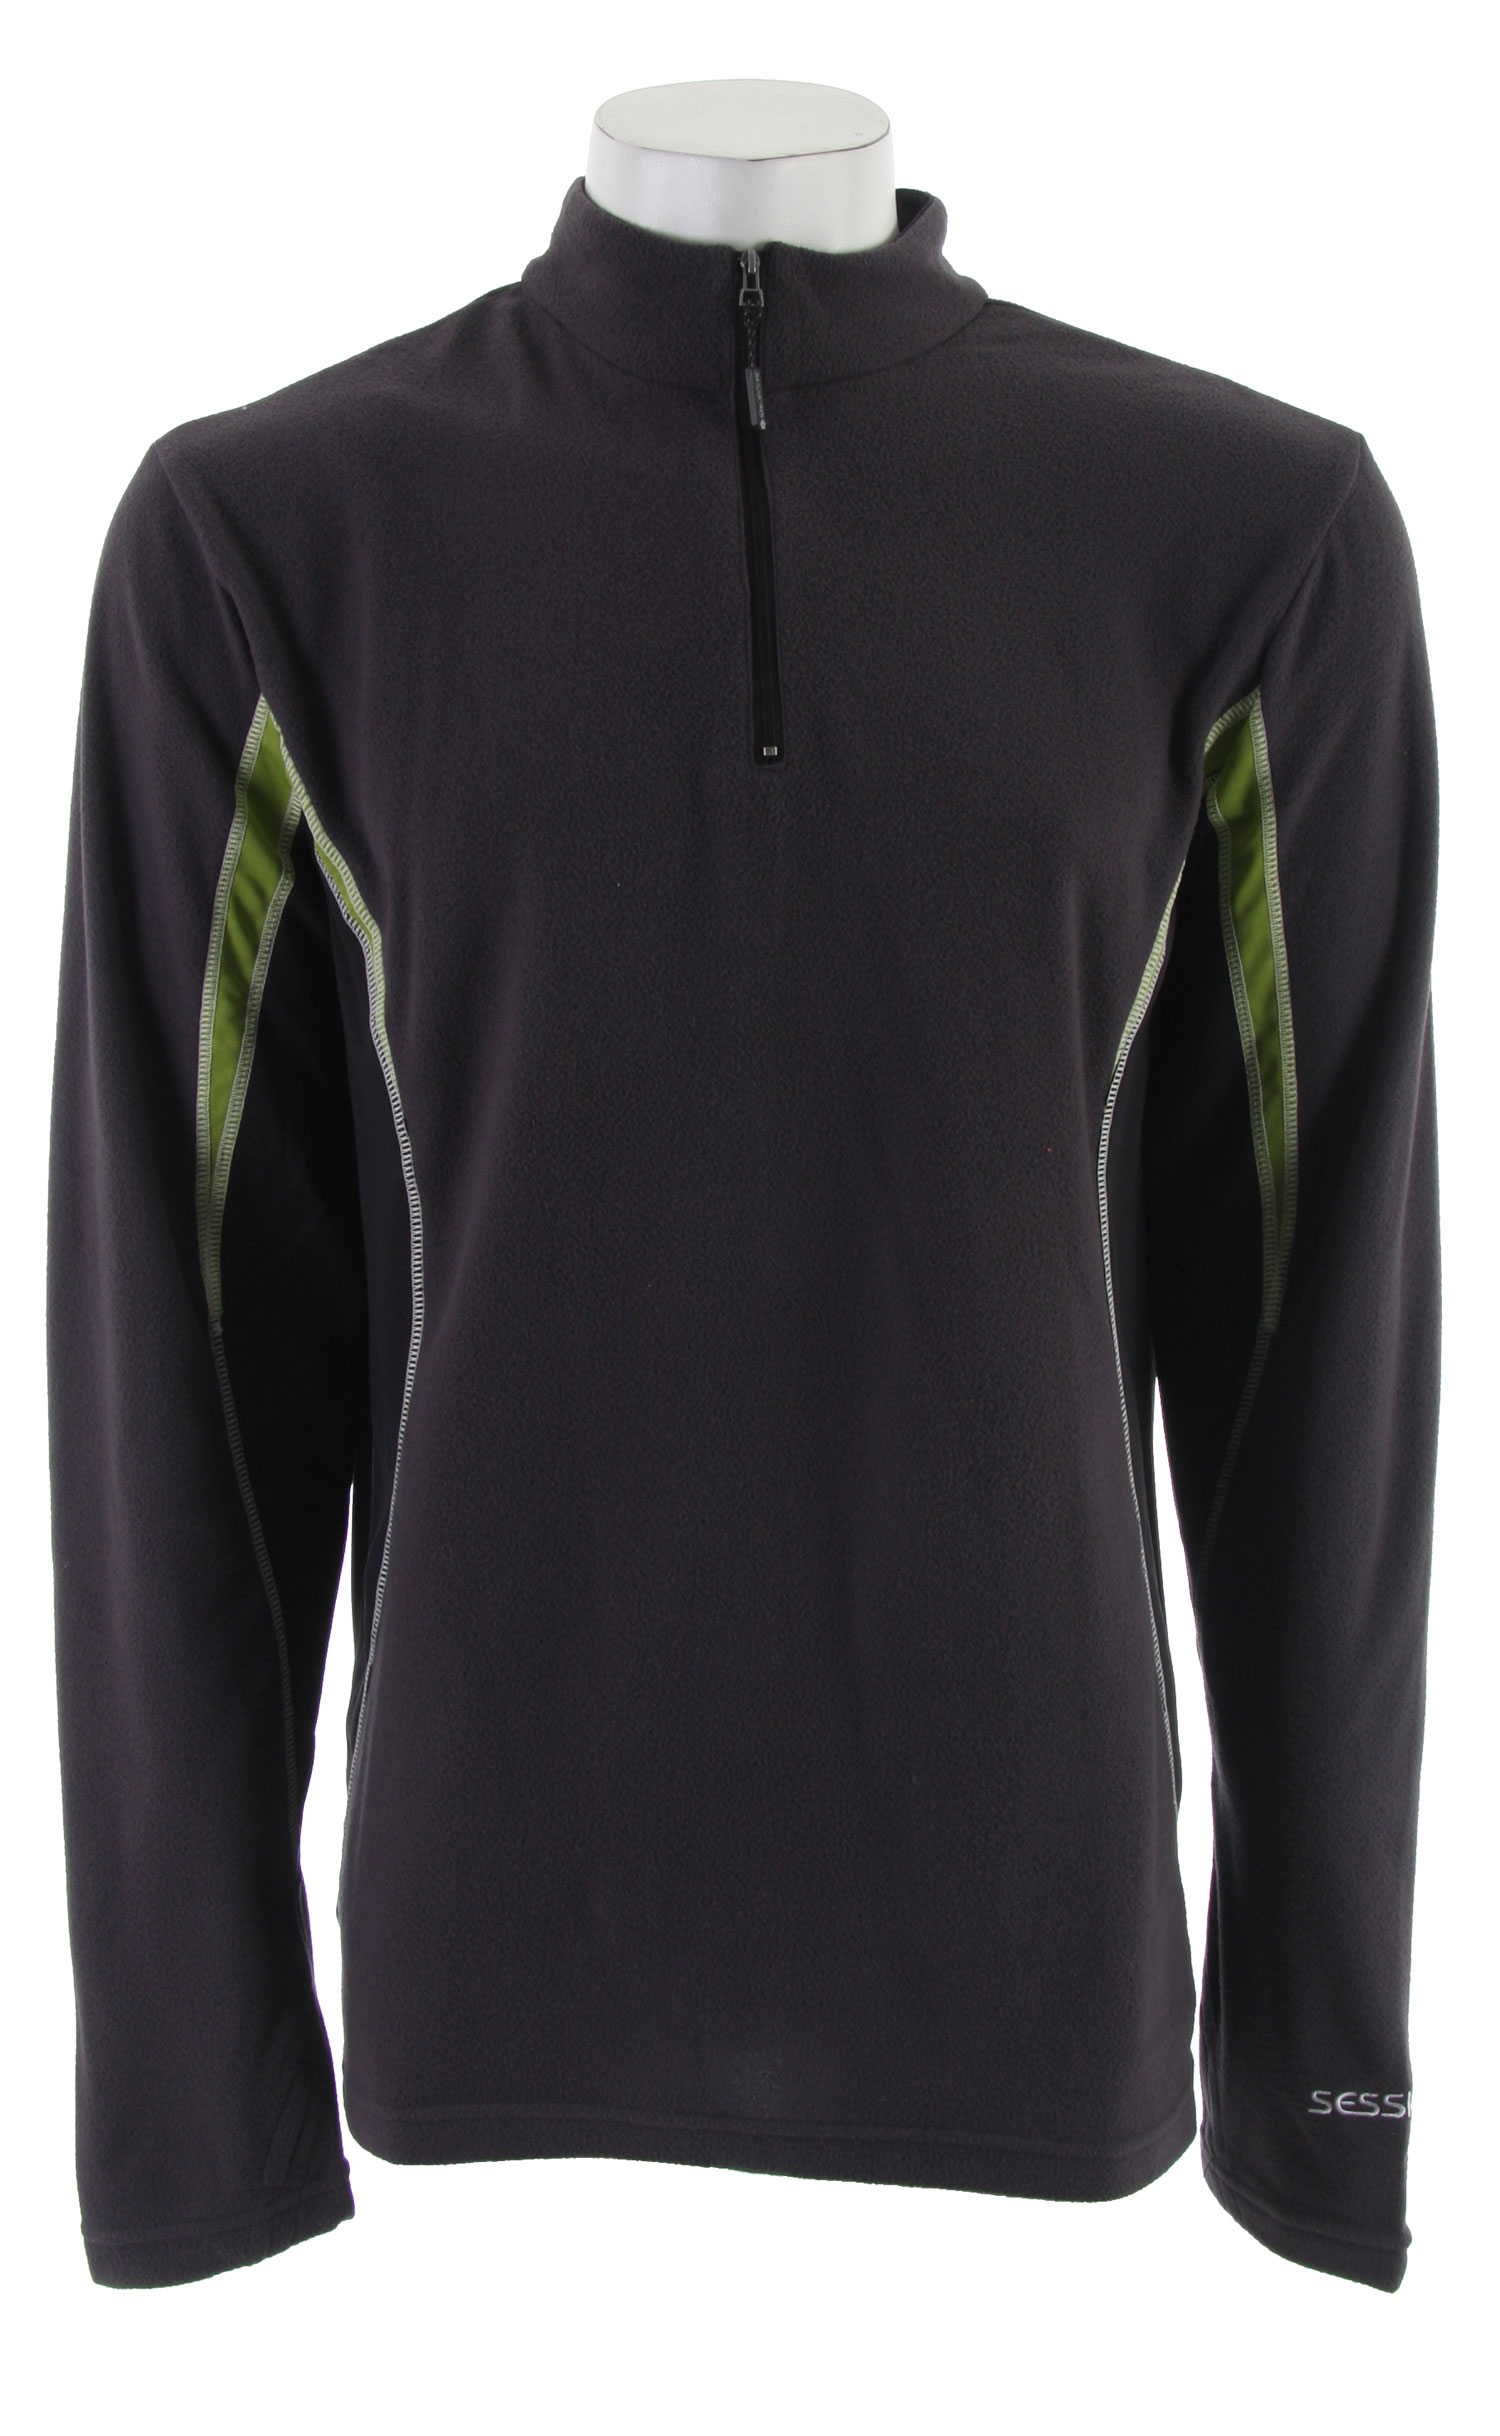 Entertainment Key Features of the Sessions Thermatic 1/4 Zip Mock Shirt: Butter Fleece/li> - $33.56